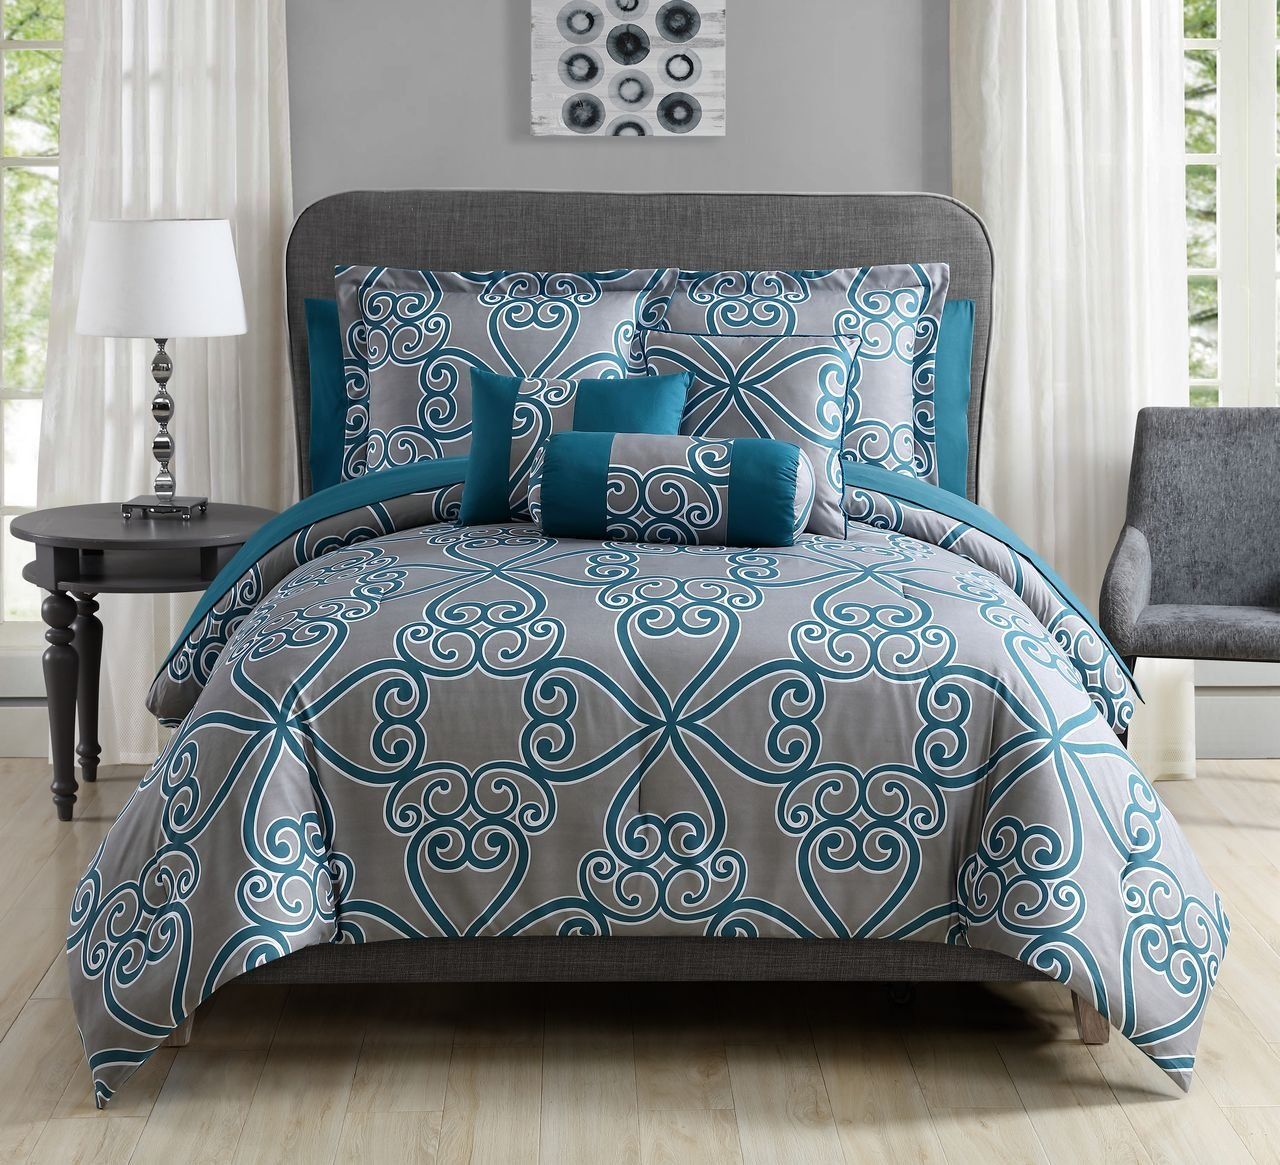 amazon com laurent dp home full comforter queen design set teal intelligent kitchen piece